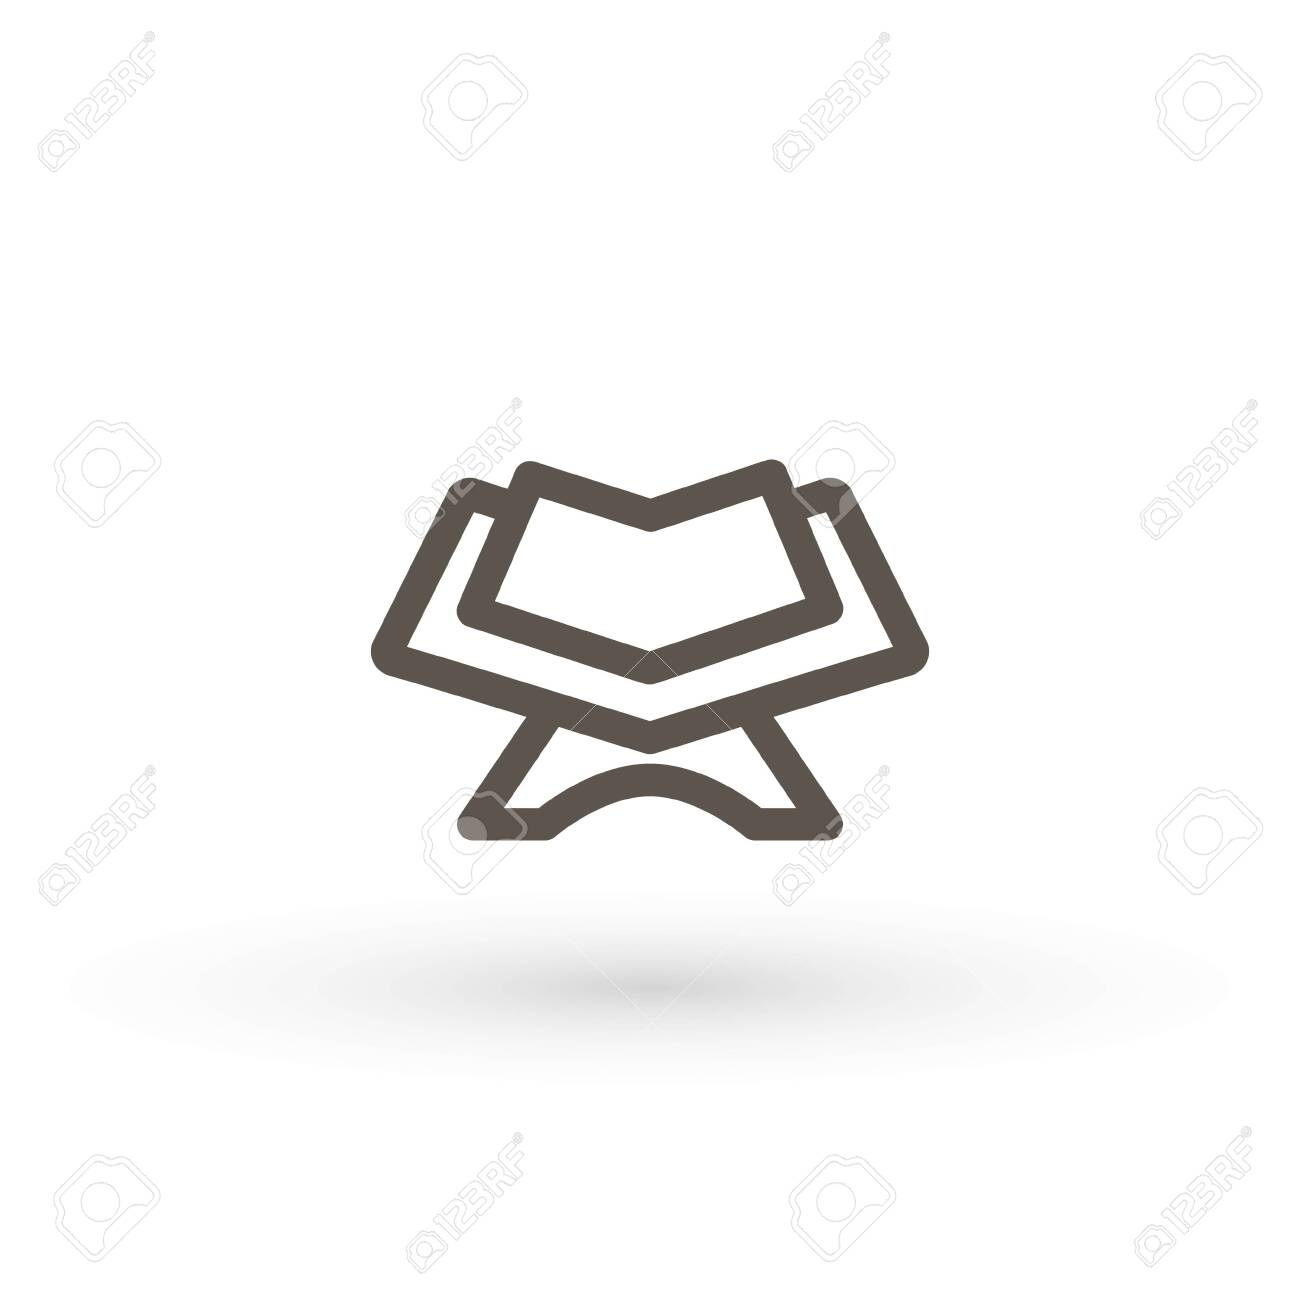 quran moslem academy logo icon vector koran islam islamic muslim royalty free cliparts vectors and stock illustration image 144354399 quran moslem academy logo icon vector koran islam islamic muslim